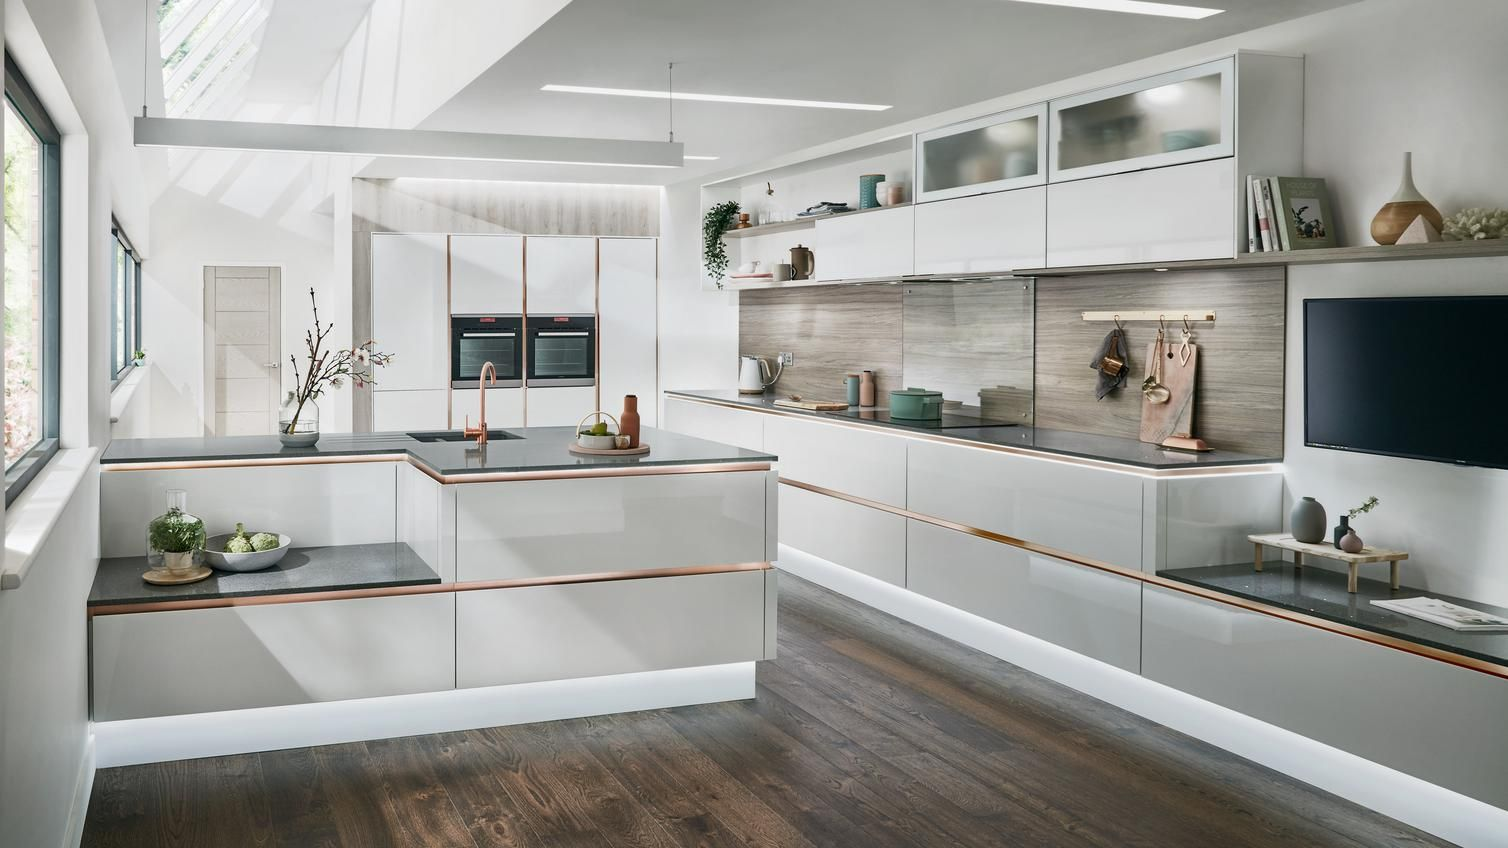 Linear Trend Latest kitchen designs, Contemporary